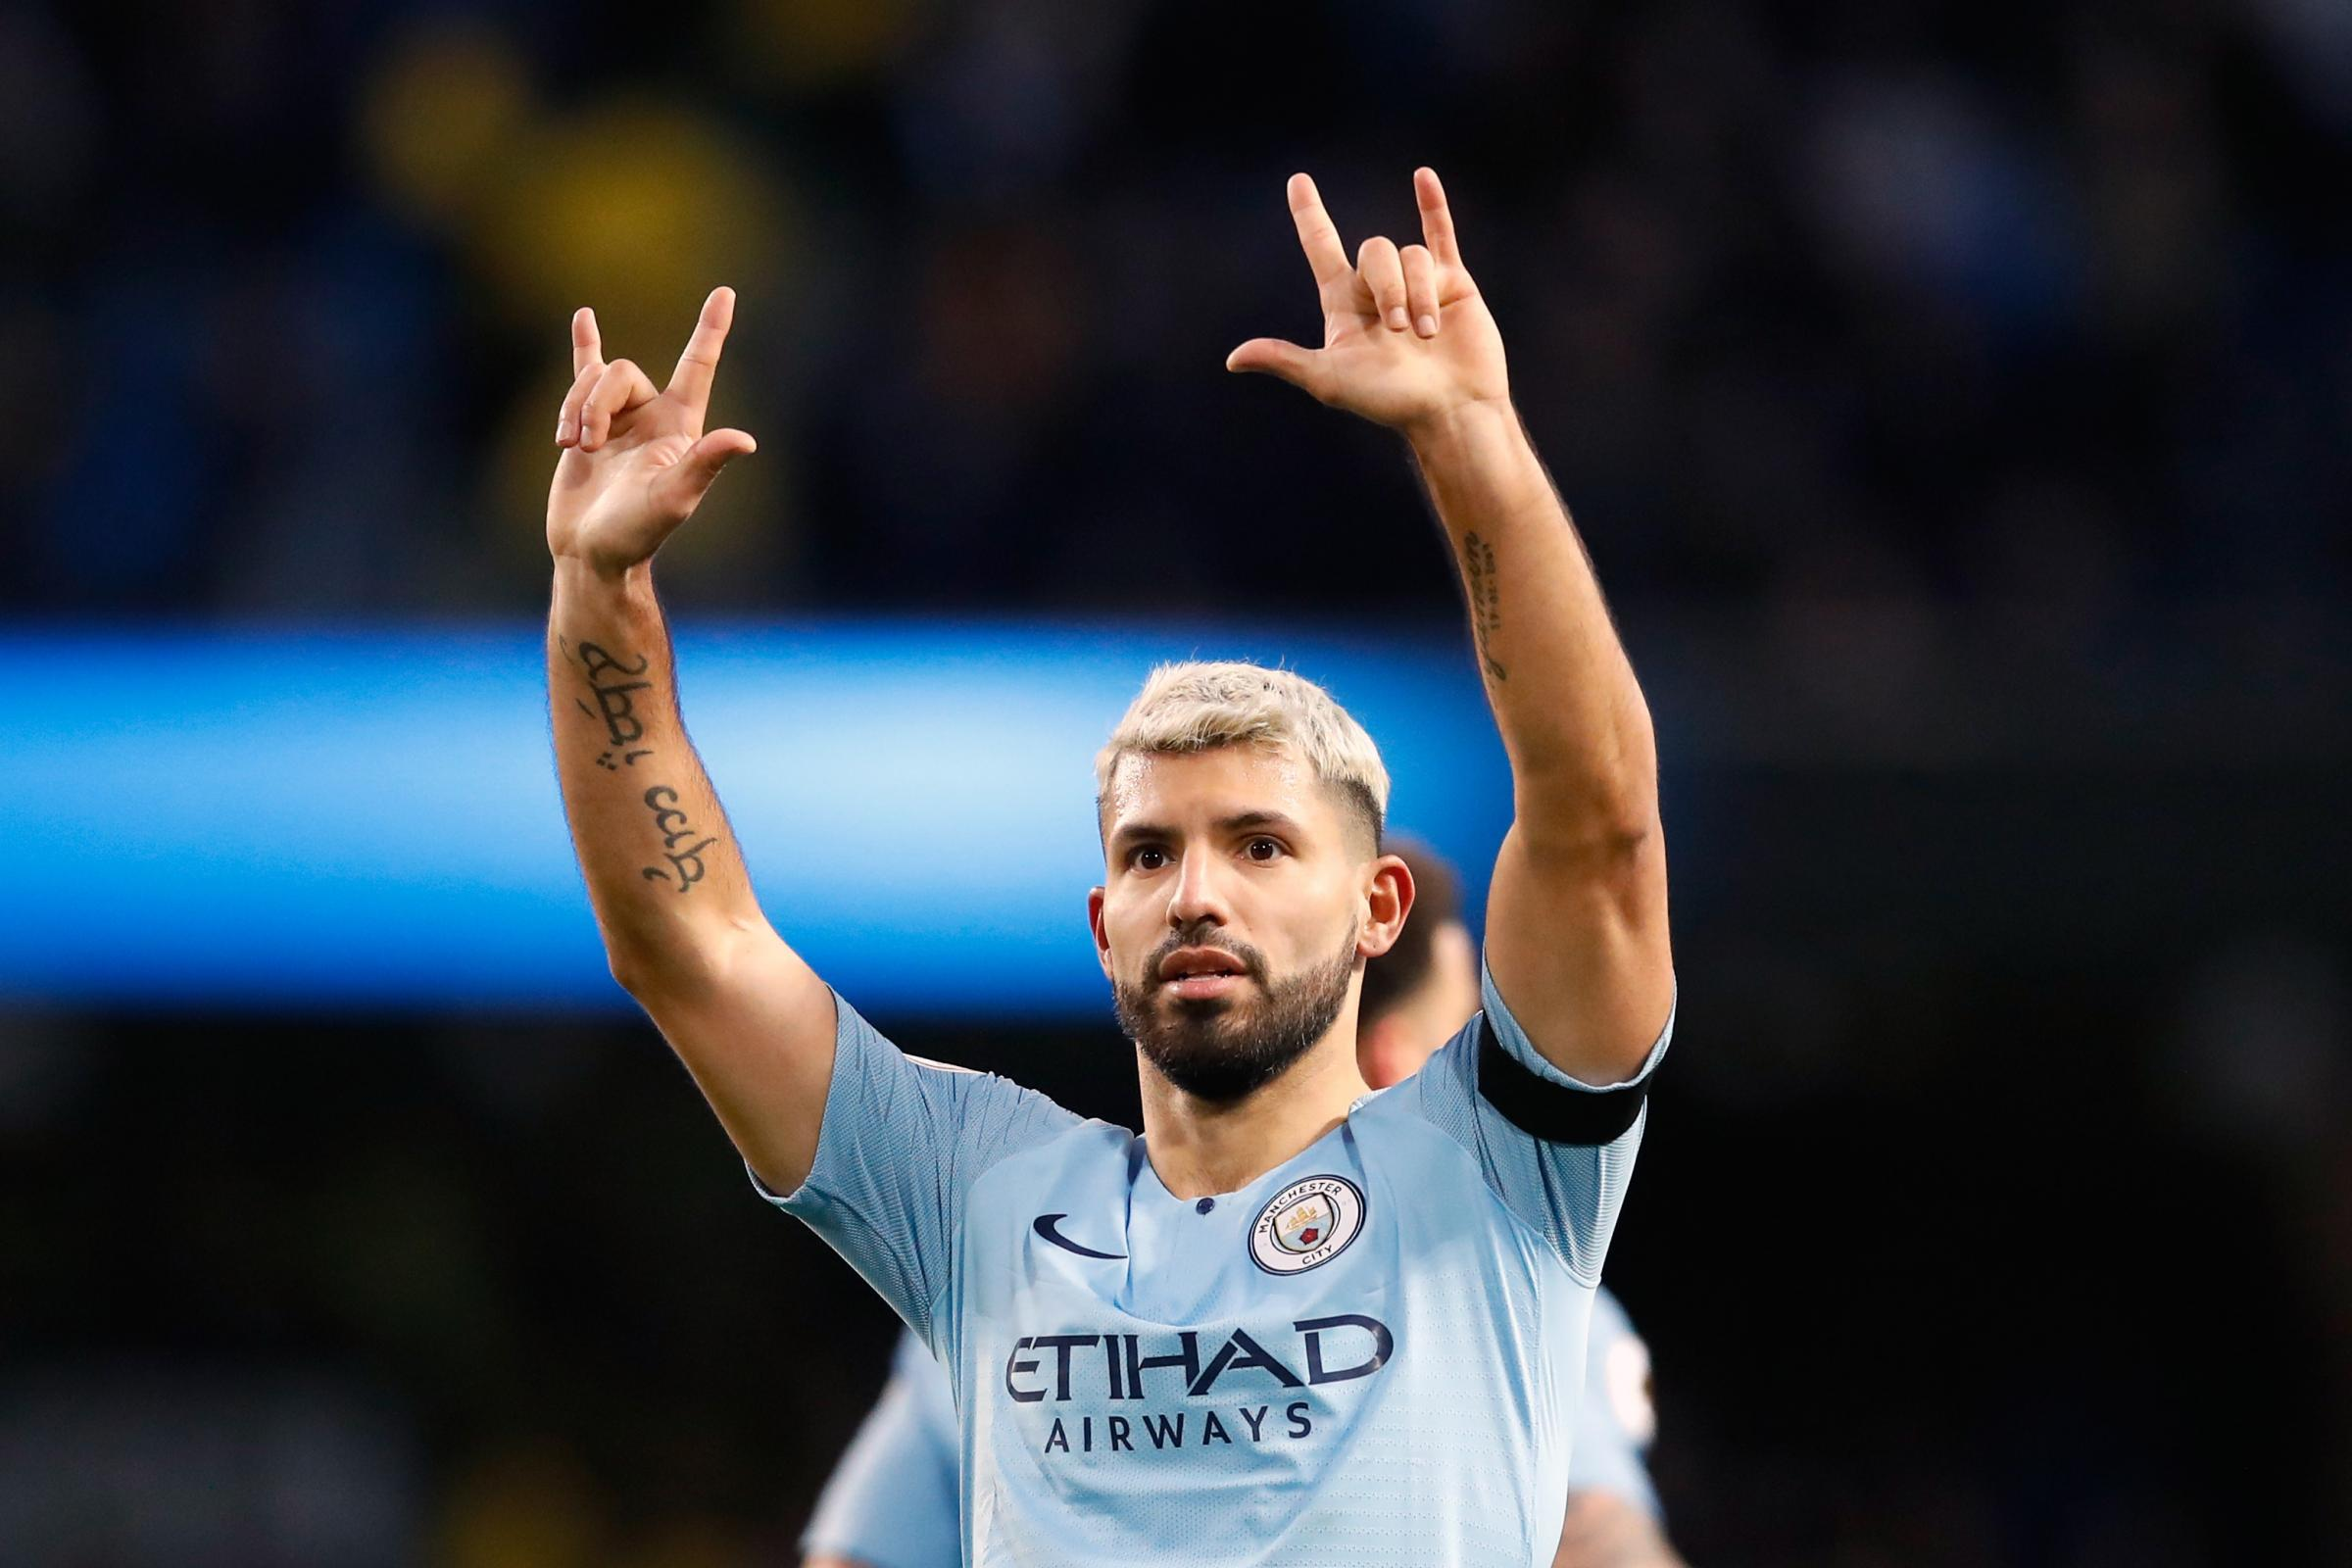 Sergio Aguero's hat-trick helped Manchester City thrash Chelsea